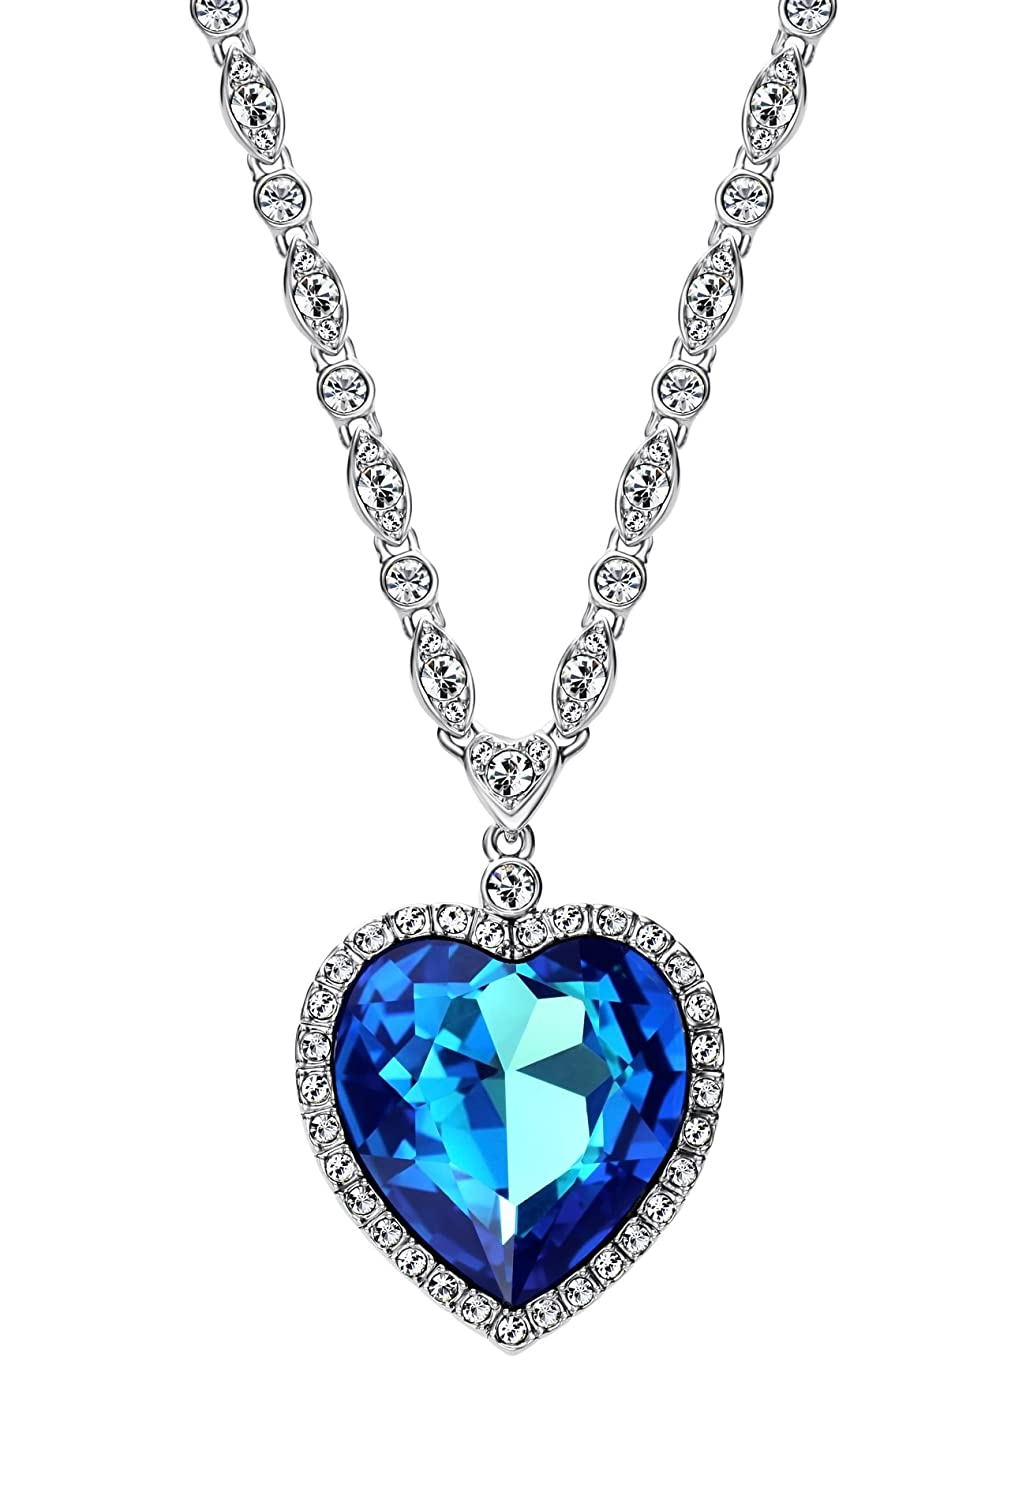 necklace views pendant crystal blue petal necklaceby blooming htm p statement alternative